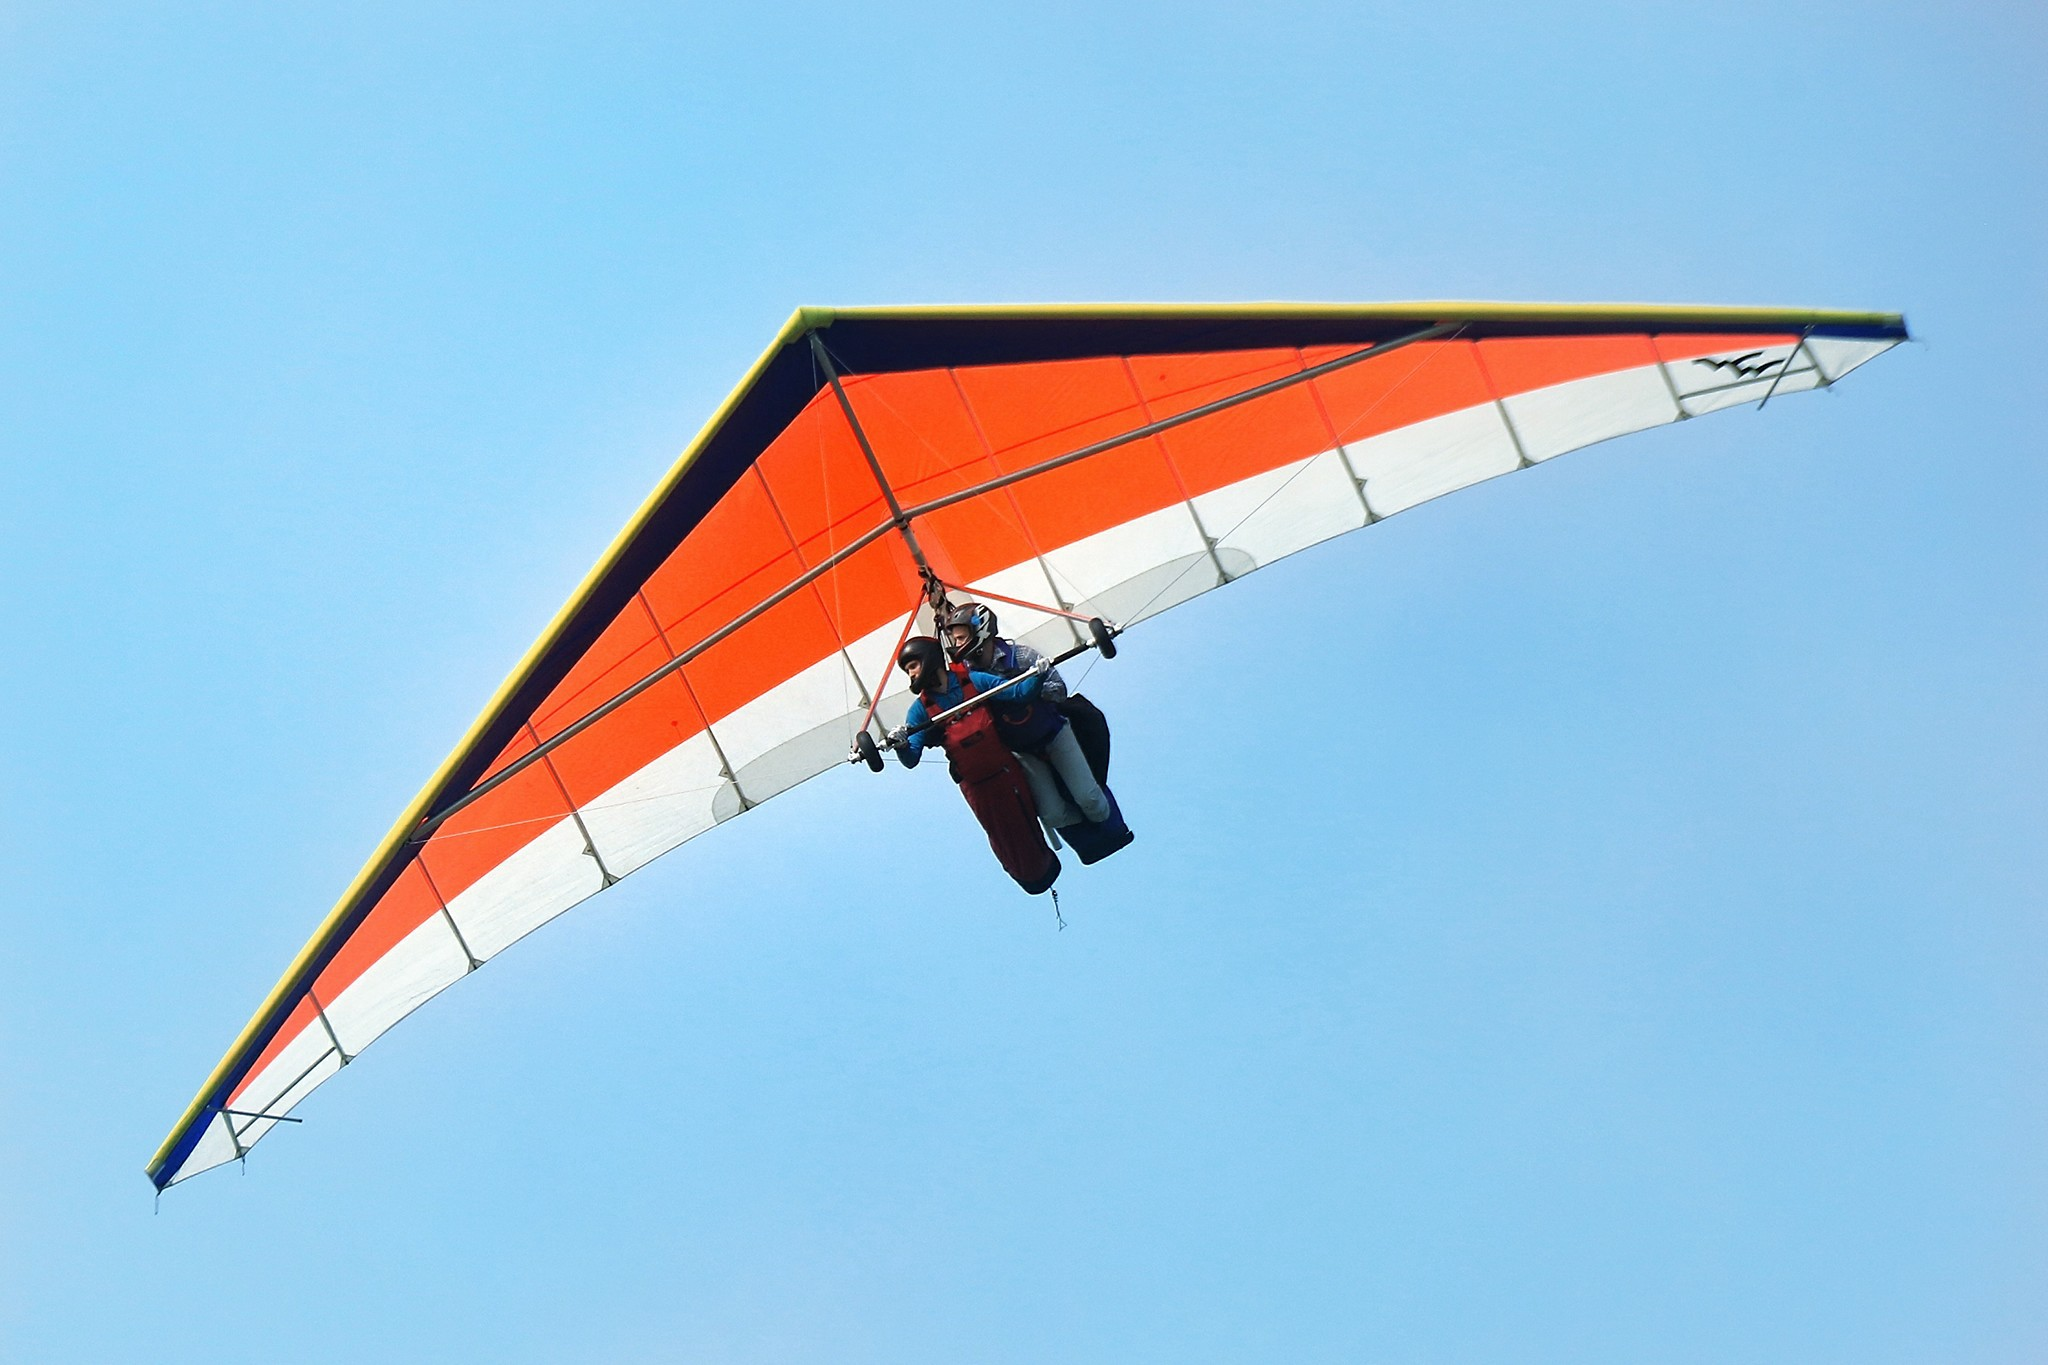 Jonny Durand sets two hang gliding world records!